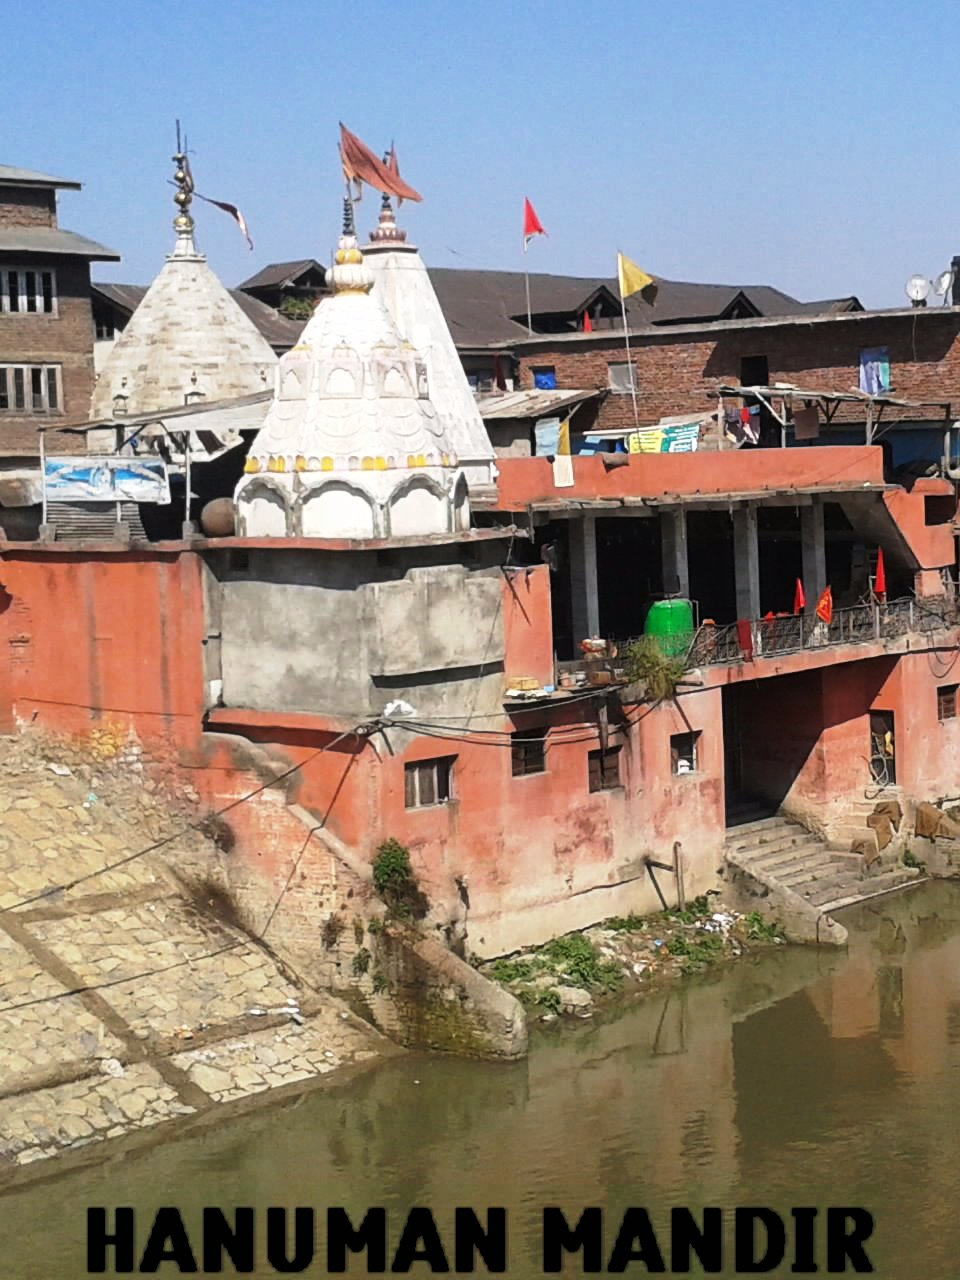 Hanuman Mandir In Shopian, Jammu and Kashmir